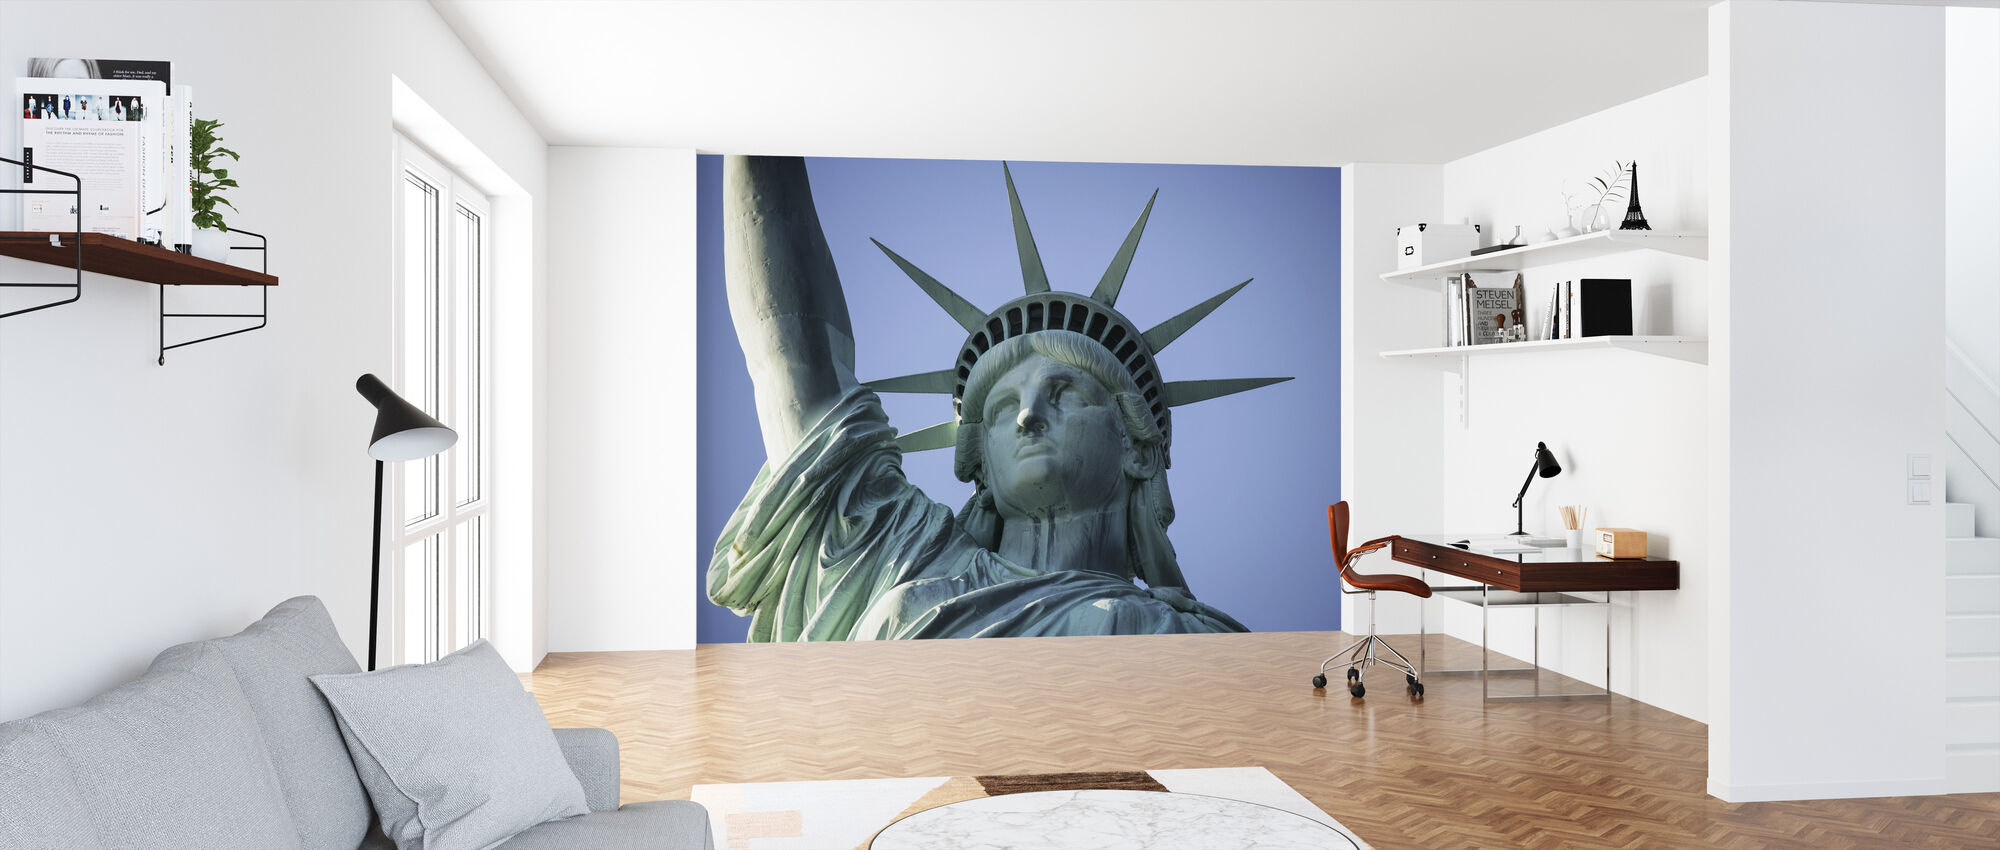 Statue of Liberty - Wallpaper - Office